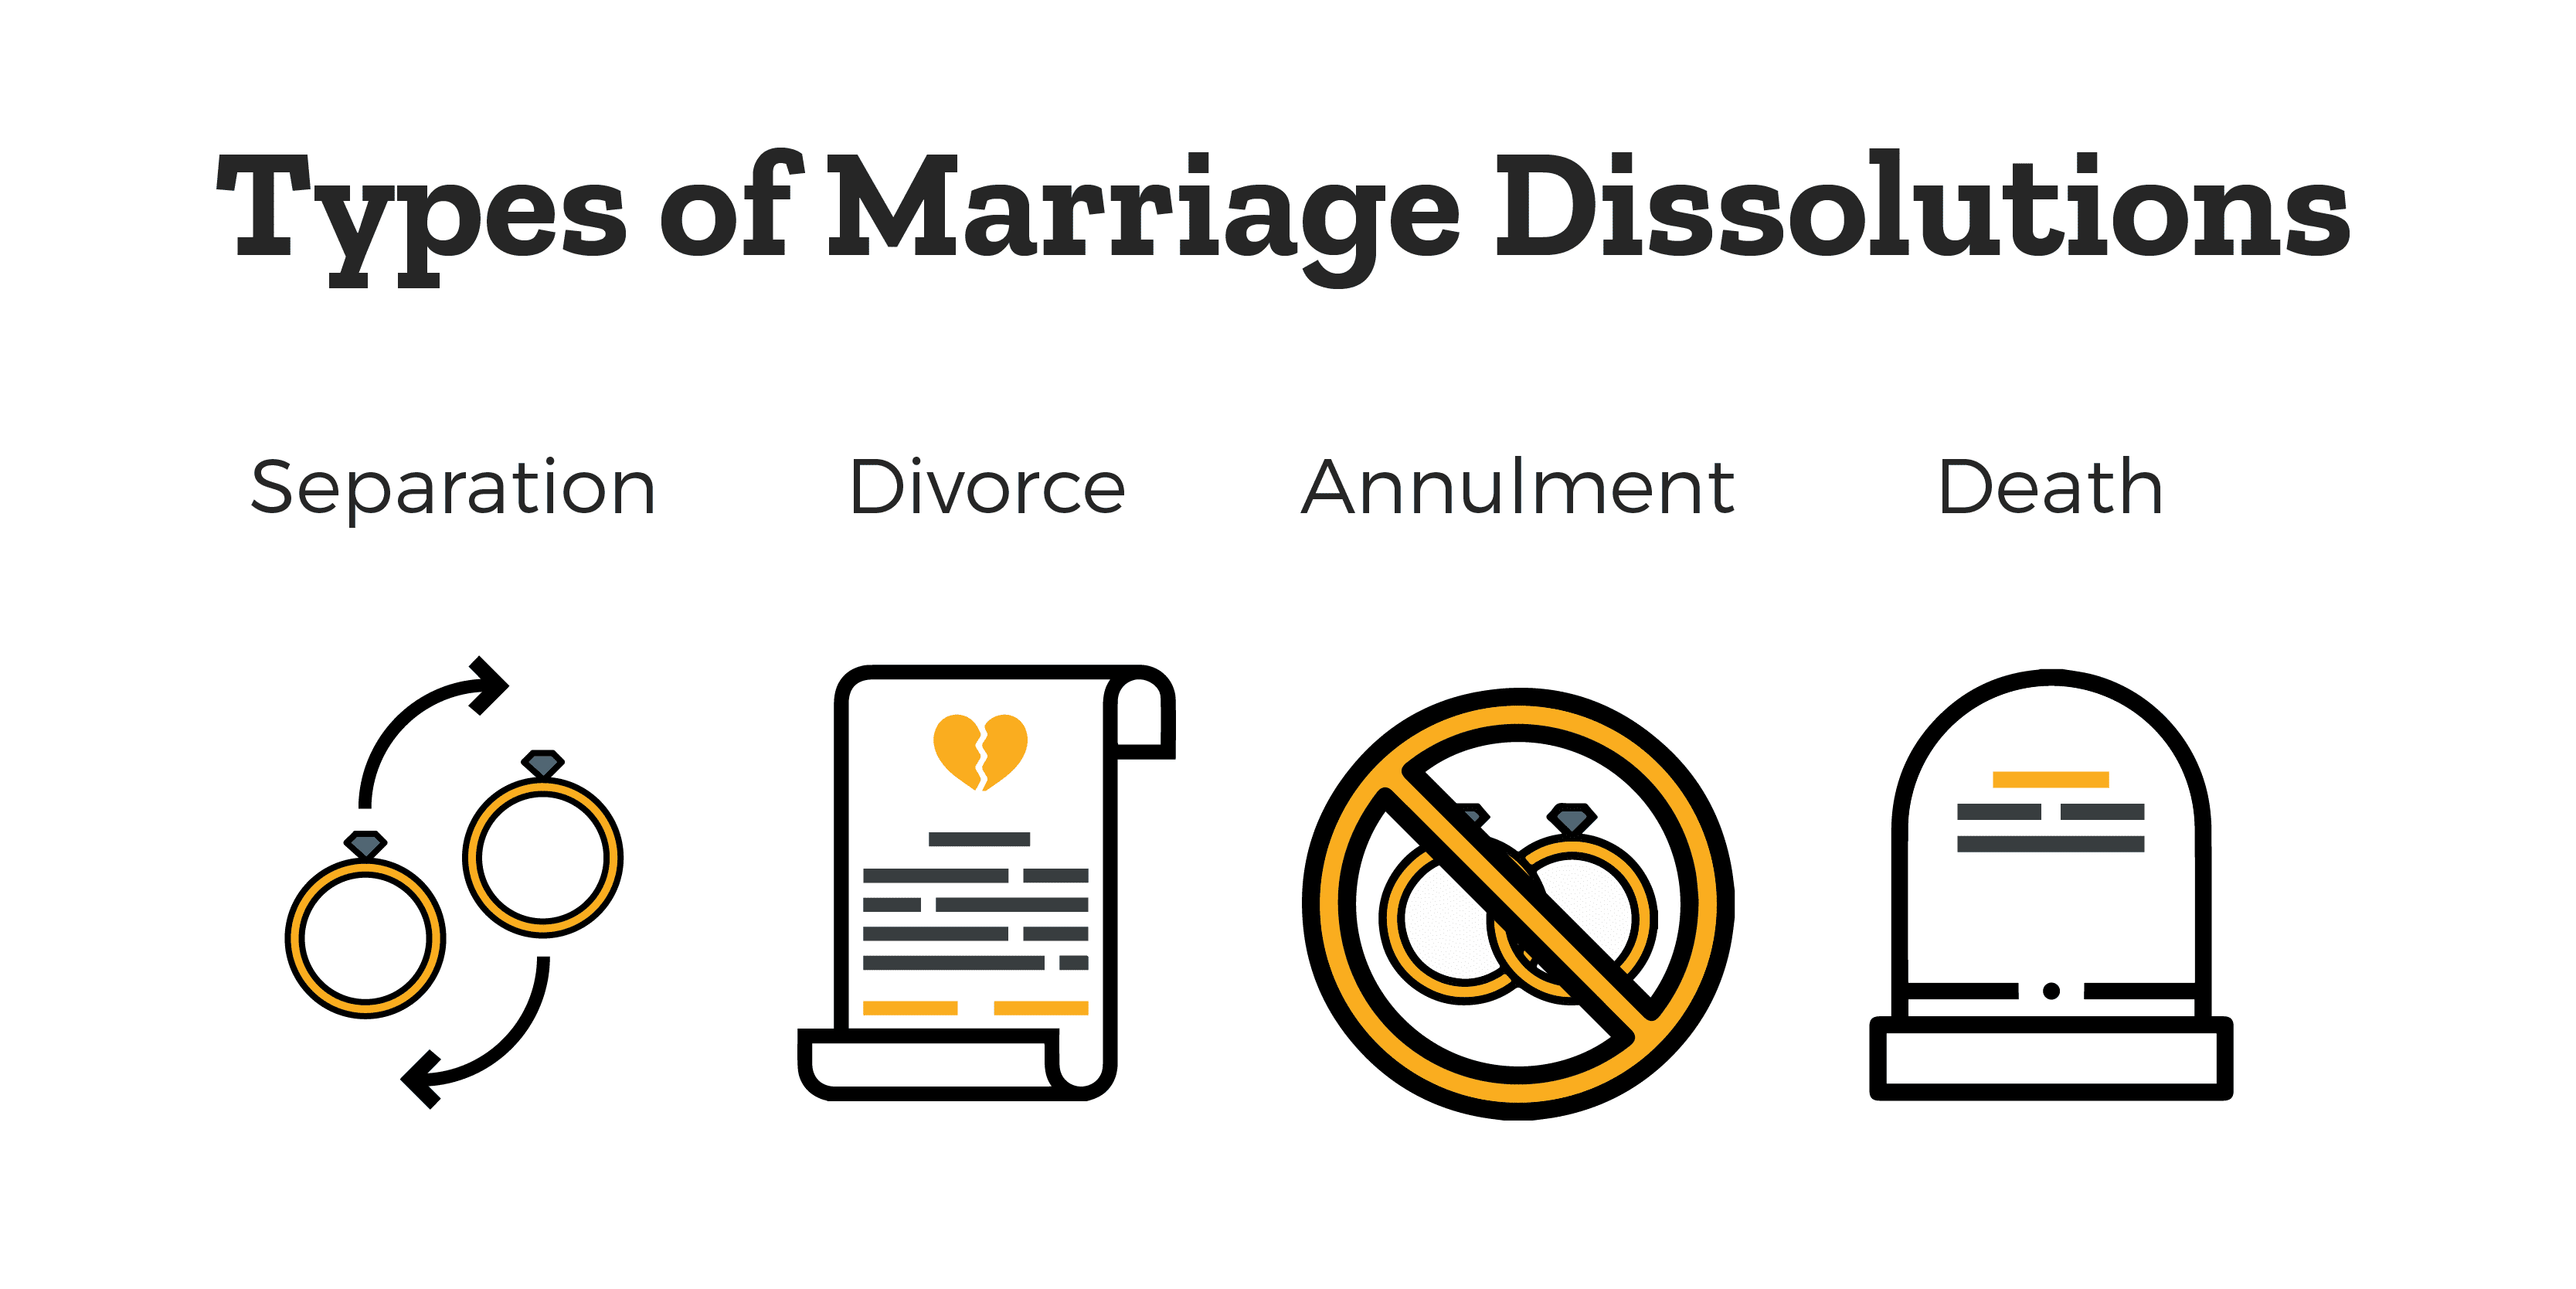 Explanation of types of Dissolution of Marriage - separation, divorce, annulment, and death.